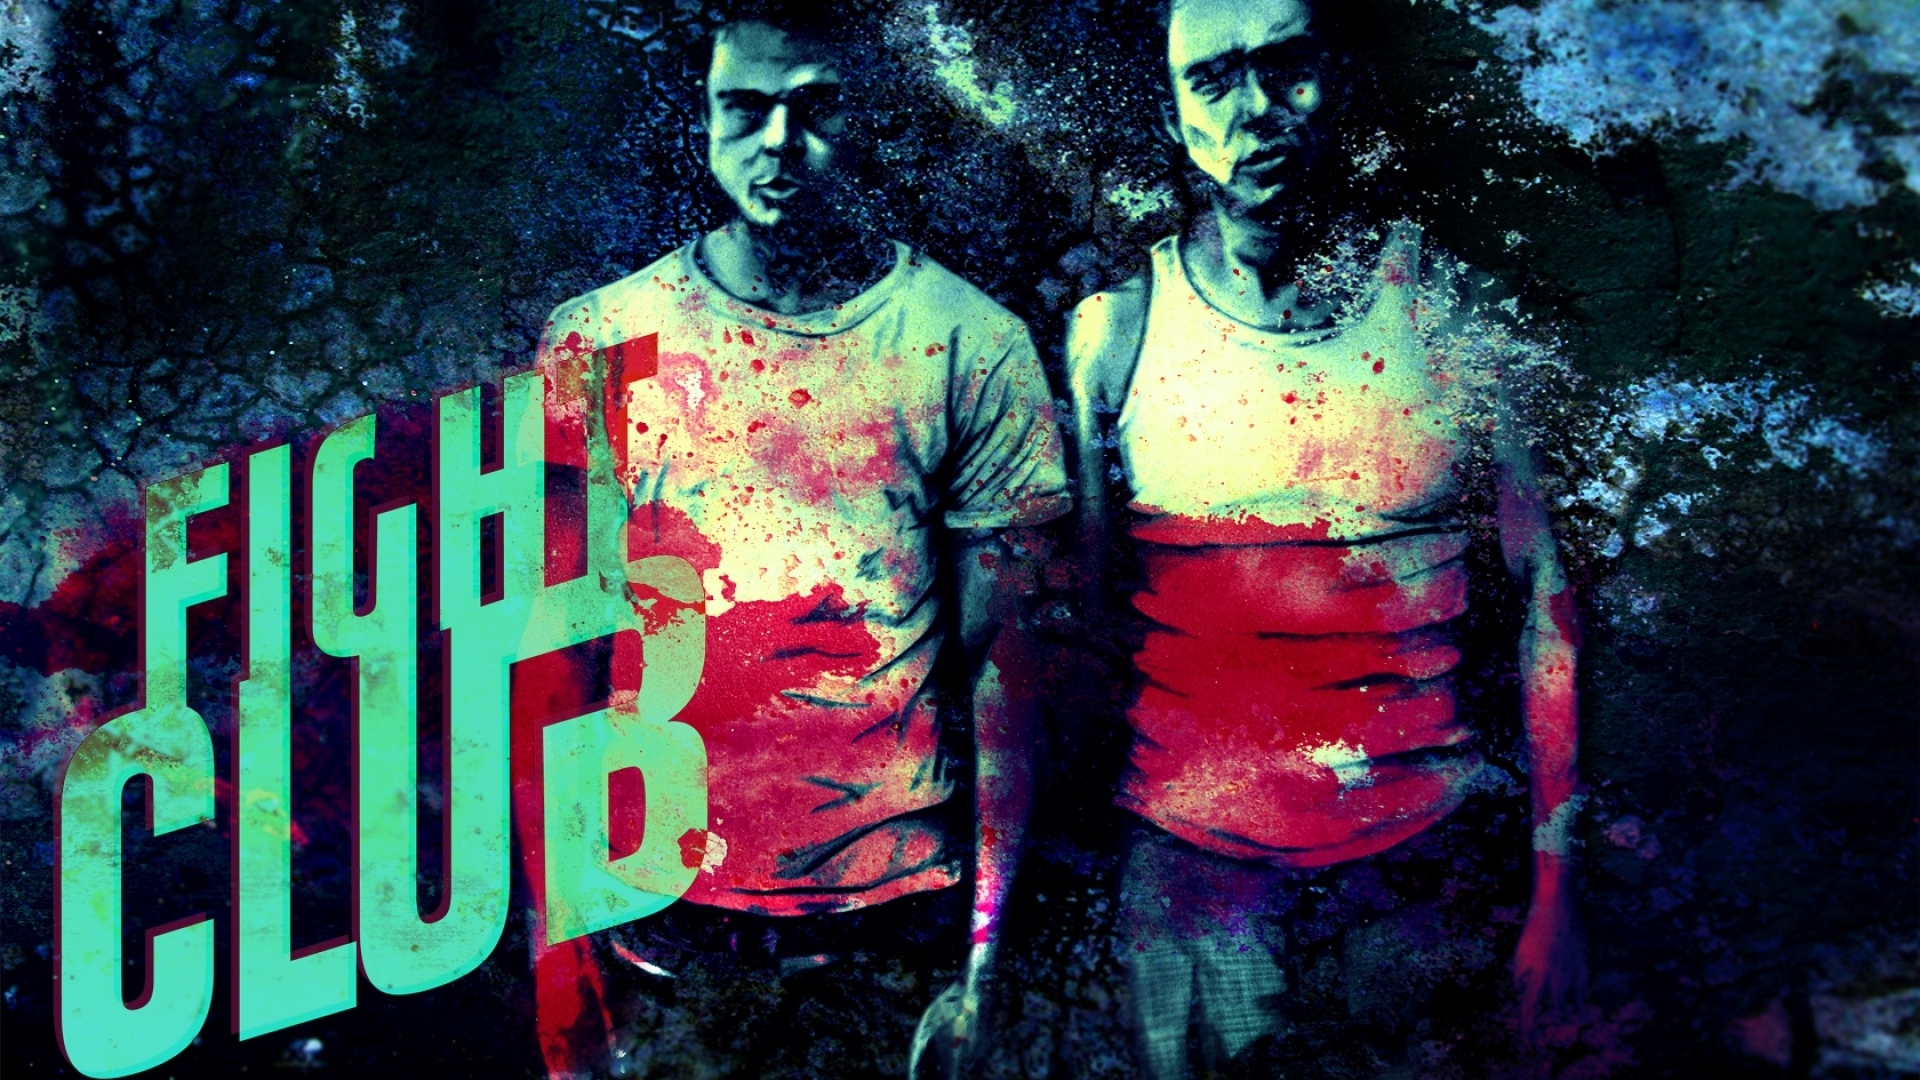 download wallpaper 1920x1080 fight club, man, fighter, blood, title